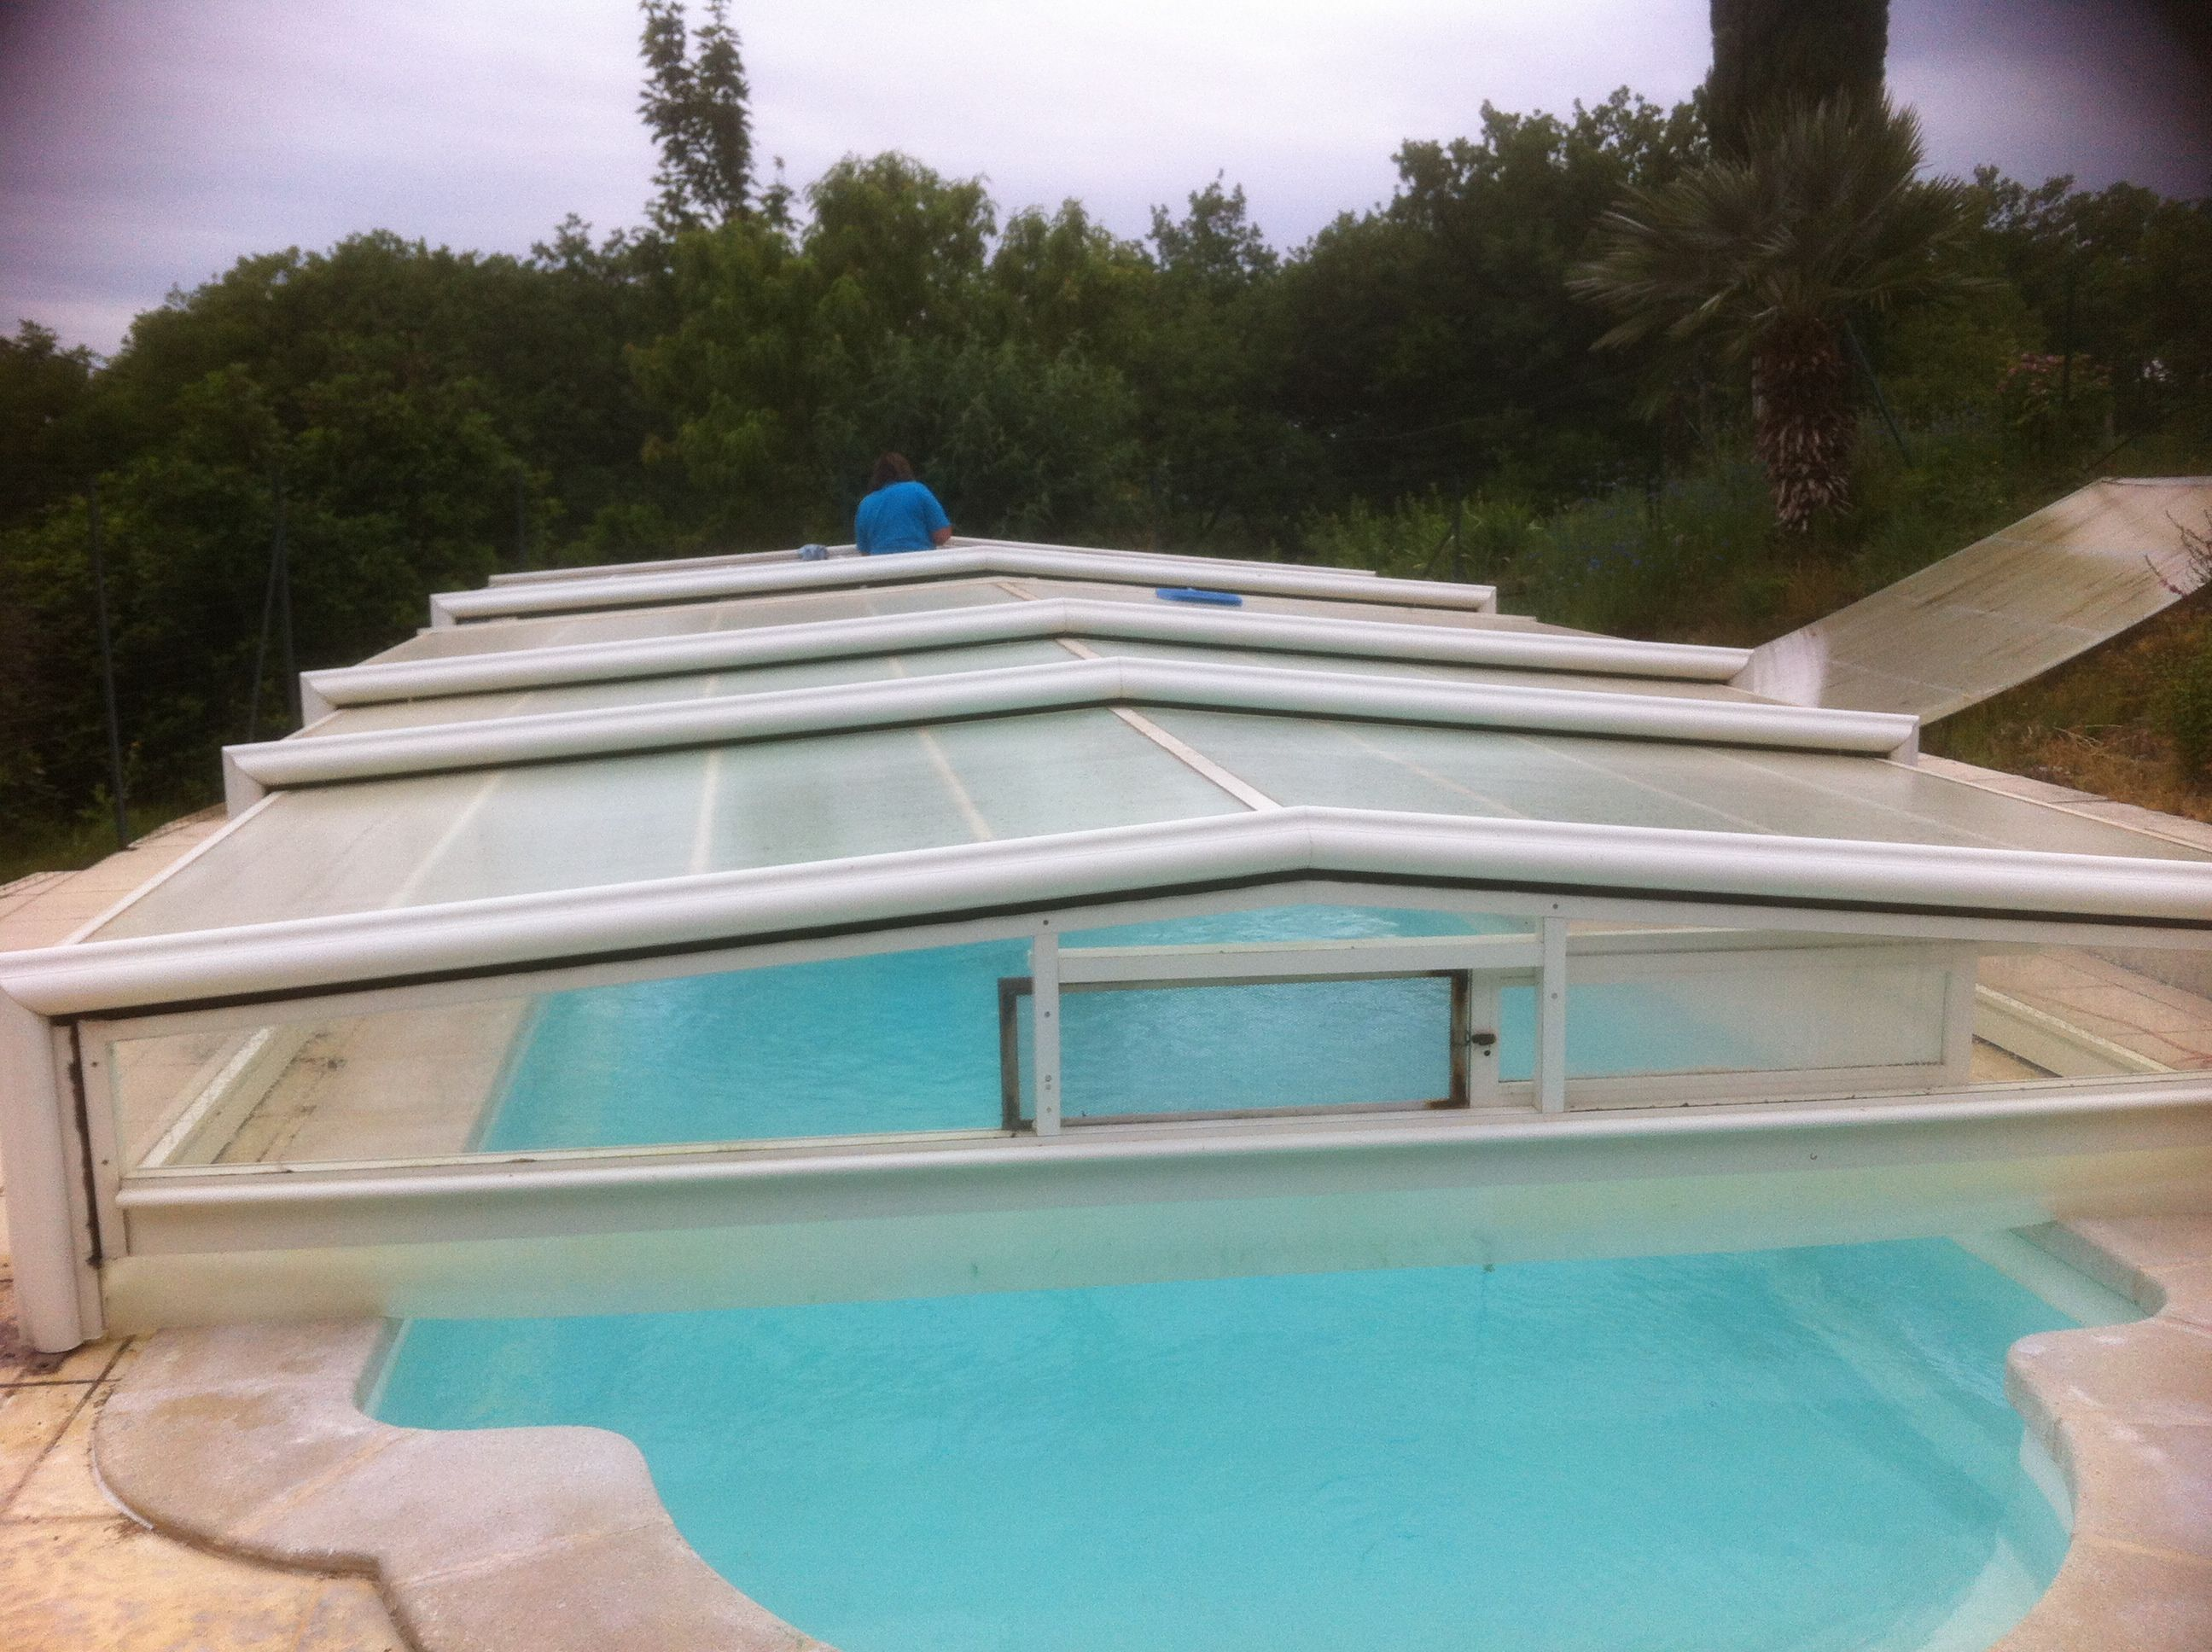 Abri de piscine for Abri de piscine